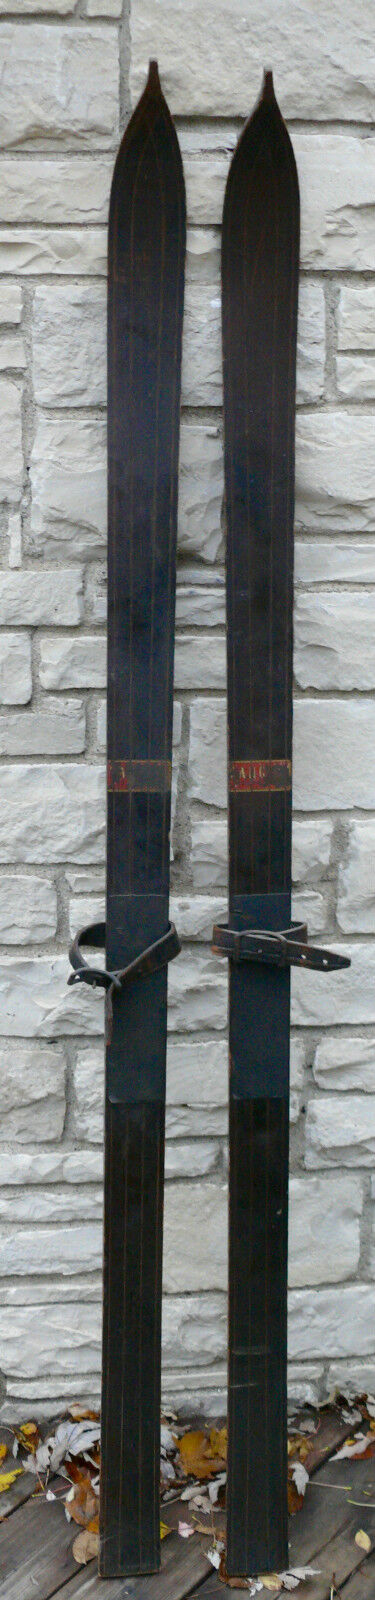 ANTIQUE WOODEN SNO WINTER SNO WOODEN SKIS SKIING d63f96